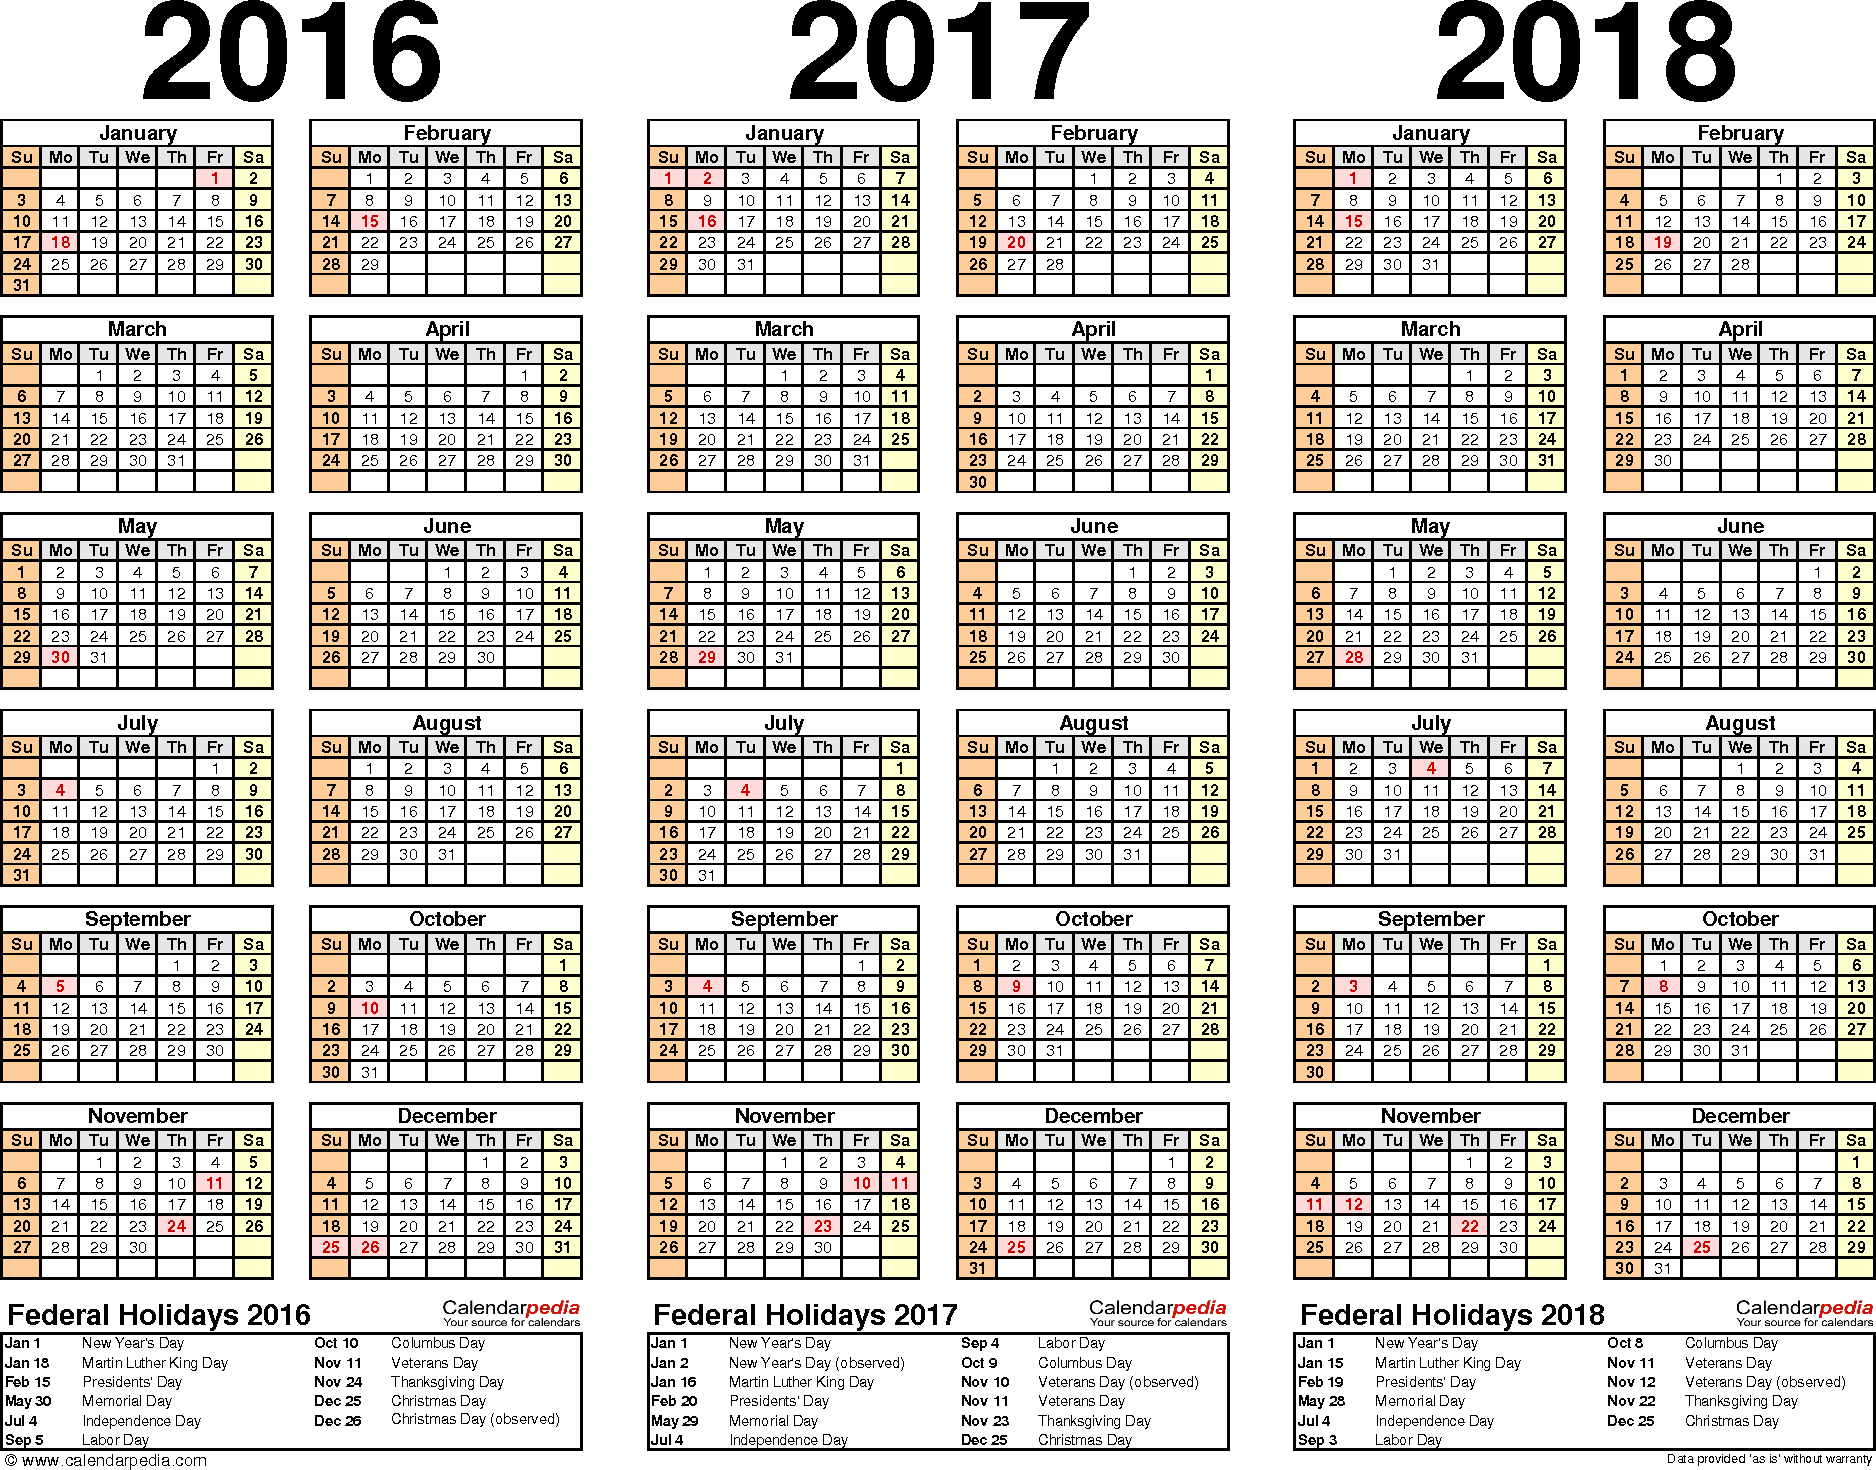 Ediblewildsus  Remarkable  Calendar   Threeyear Printable Excel Calendars With Marvelous Template  Excel Template For Three Year Calendar  Landscape With Nice How To Filter Out Duplicates In Excel Also Check Marks In Excel In Addition Remove A Password From Excel And How To Calculate Slope In Excel As Well As Name Error In Excel Additionally What Are Sparklines In Excel From Calendarpediacom With Ediblewildsus  Marvelous  Calendar   Threeyear Printable Excel Calendars With Nice Template  Excel Template For Three Year Calendar  Landscape And Remarkable How To Filter Out Duplicates In Excel Also Check Marks In Excel In Addition Remove A Password From Excel From Calendarpediacom